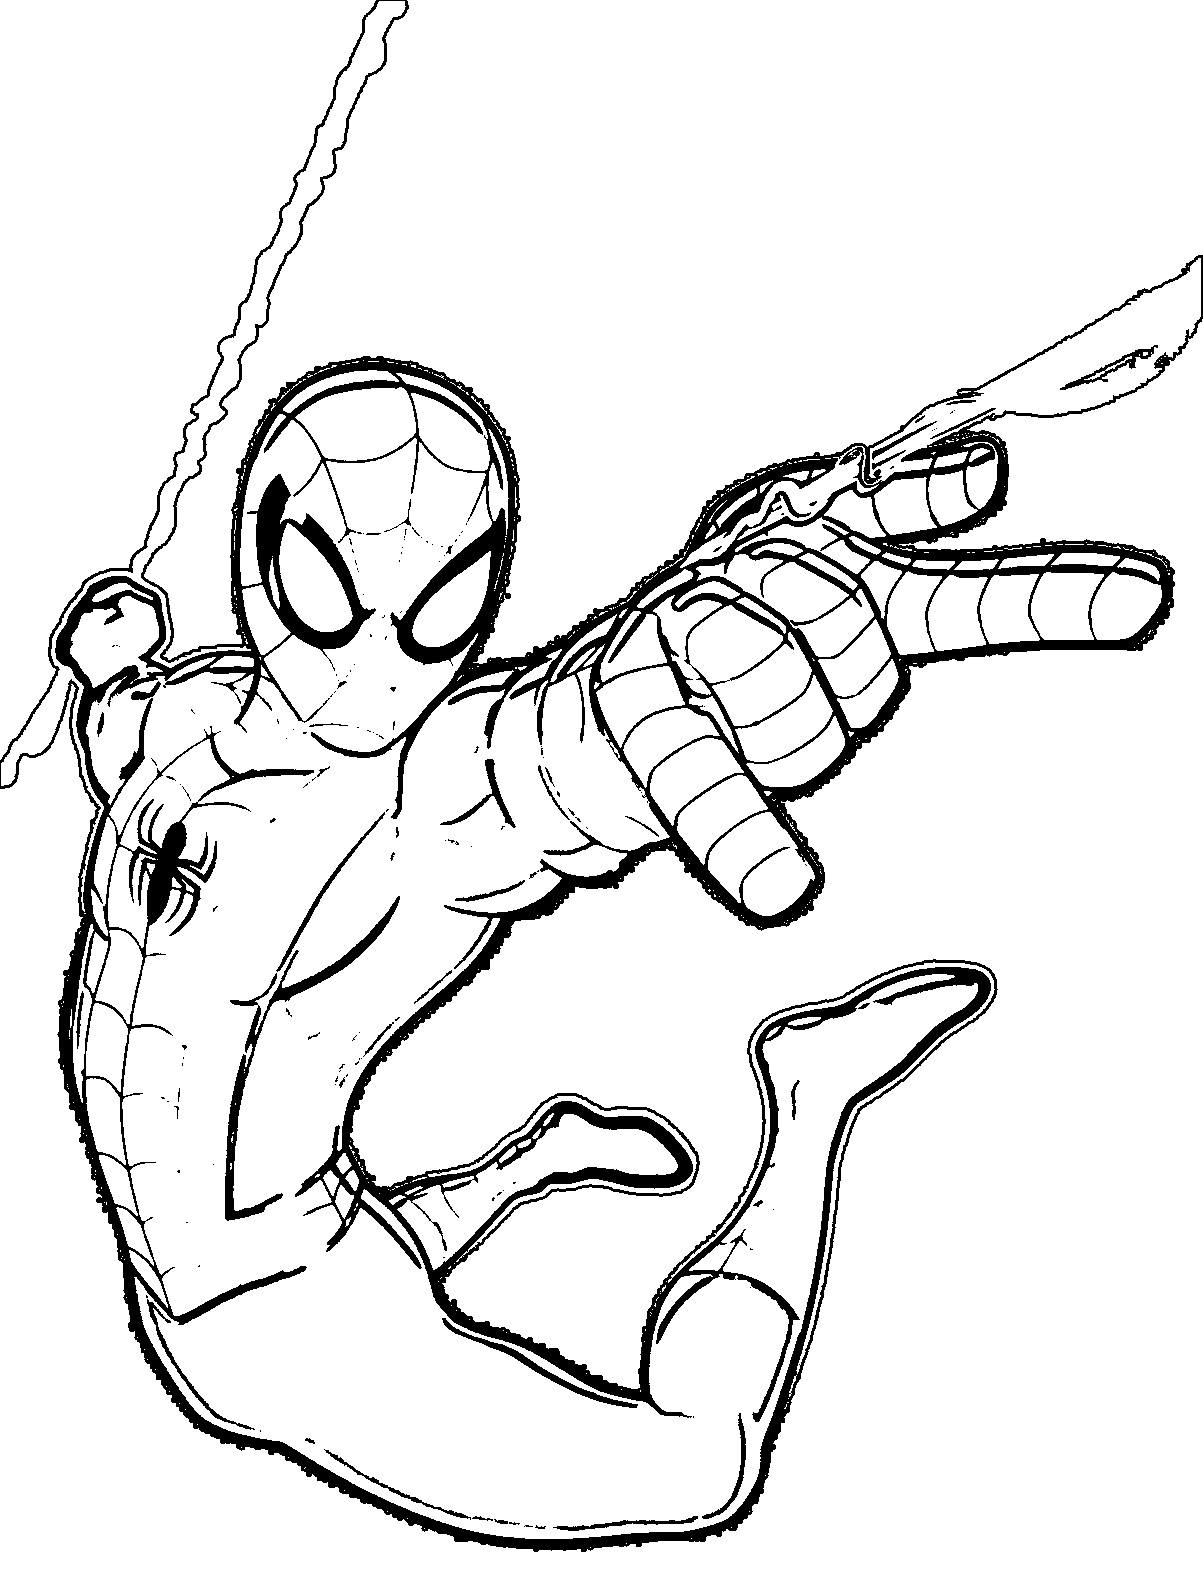 spiderman coloring pages - coloring suite pages